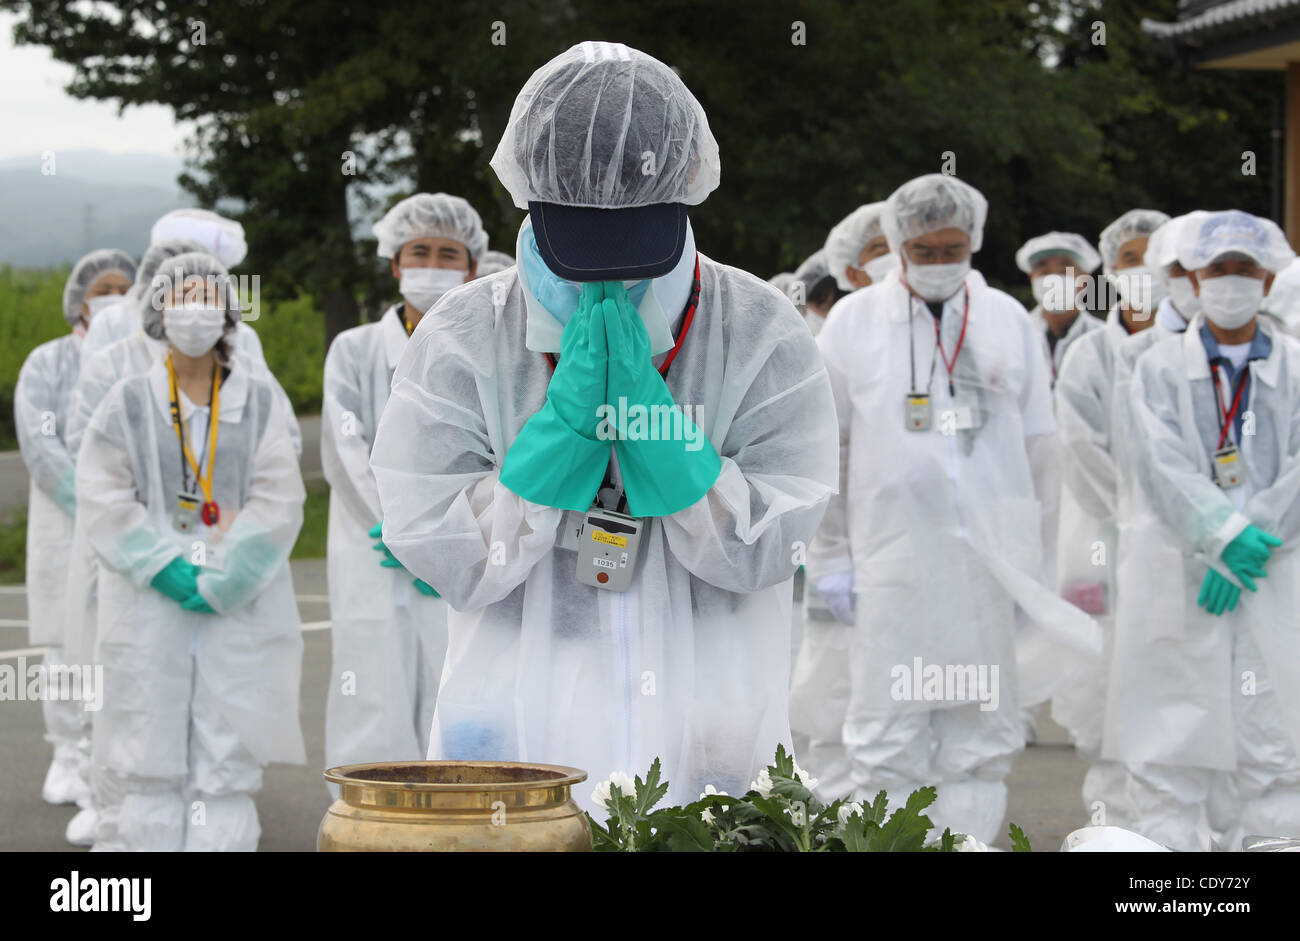 July 24, 2011 - Okuma, Japan - Residents of Okuma-cho prays during a memorial service for victims of the March 11 - Stock Image